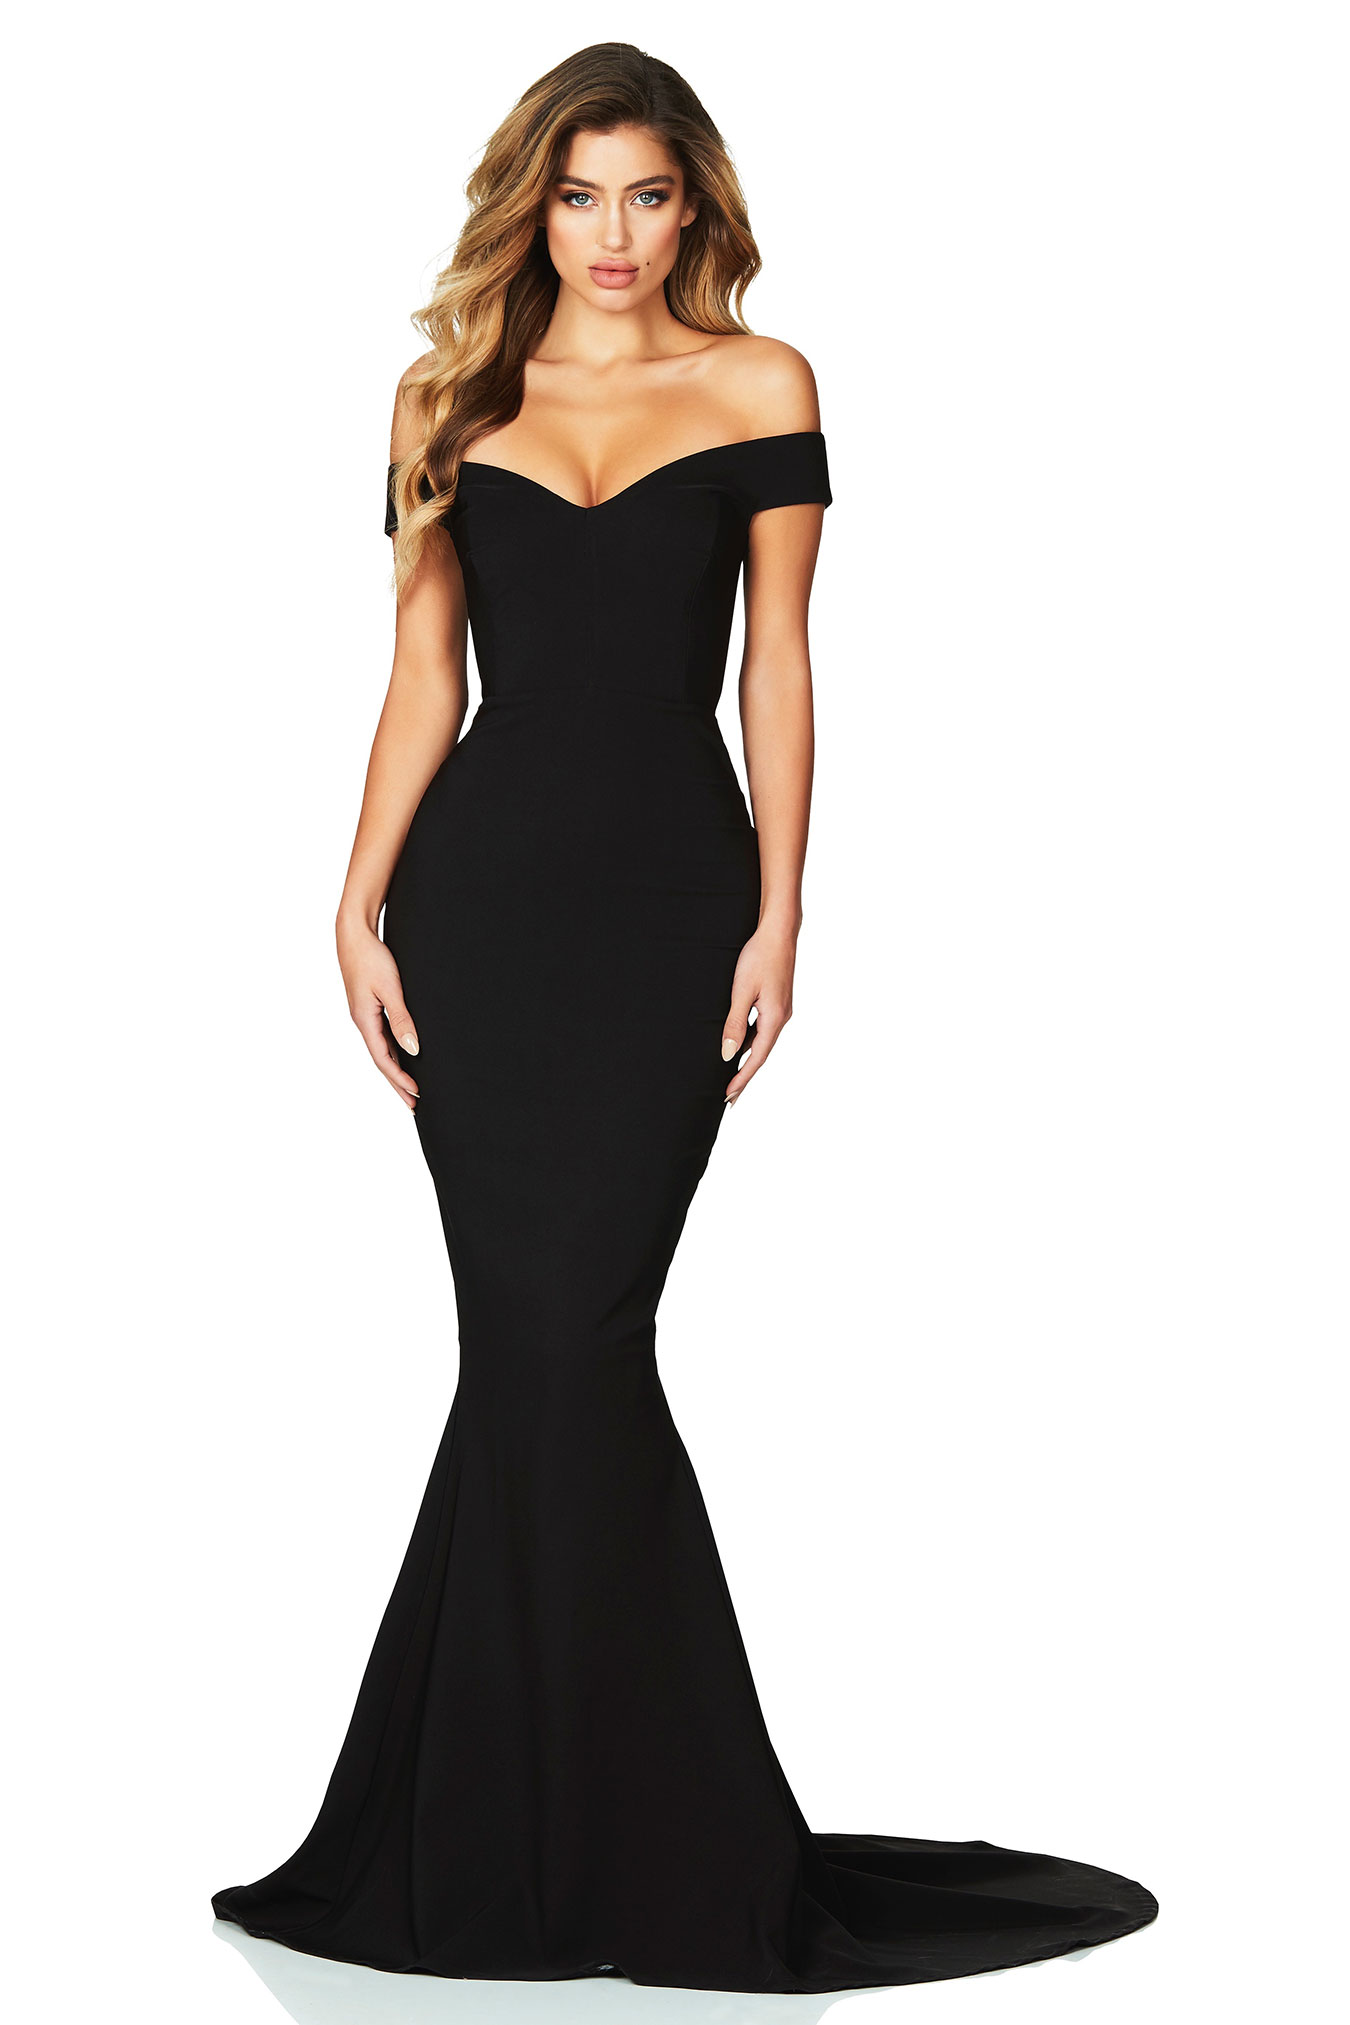 ALLURE GOWN : Buy Designer Dresses Online at Nookie